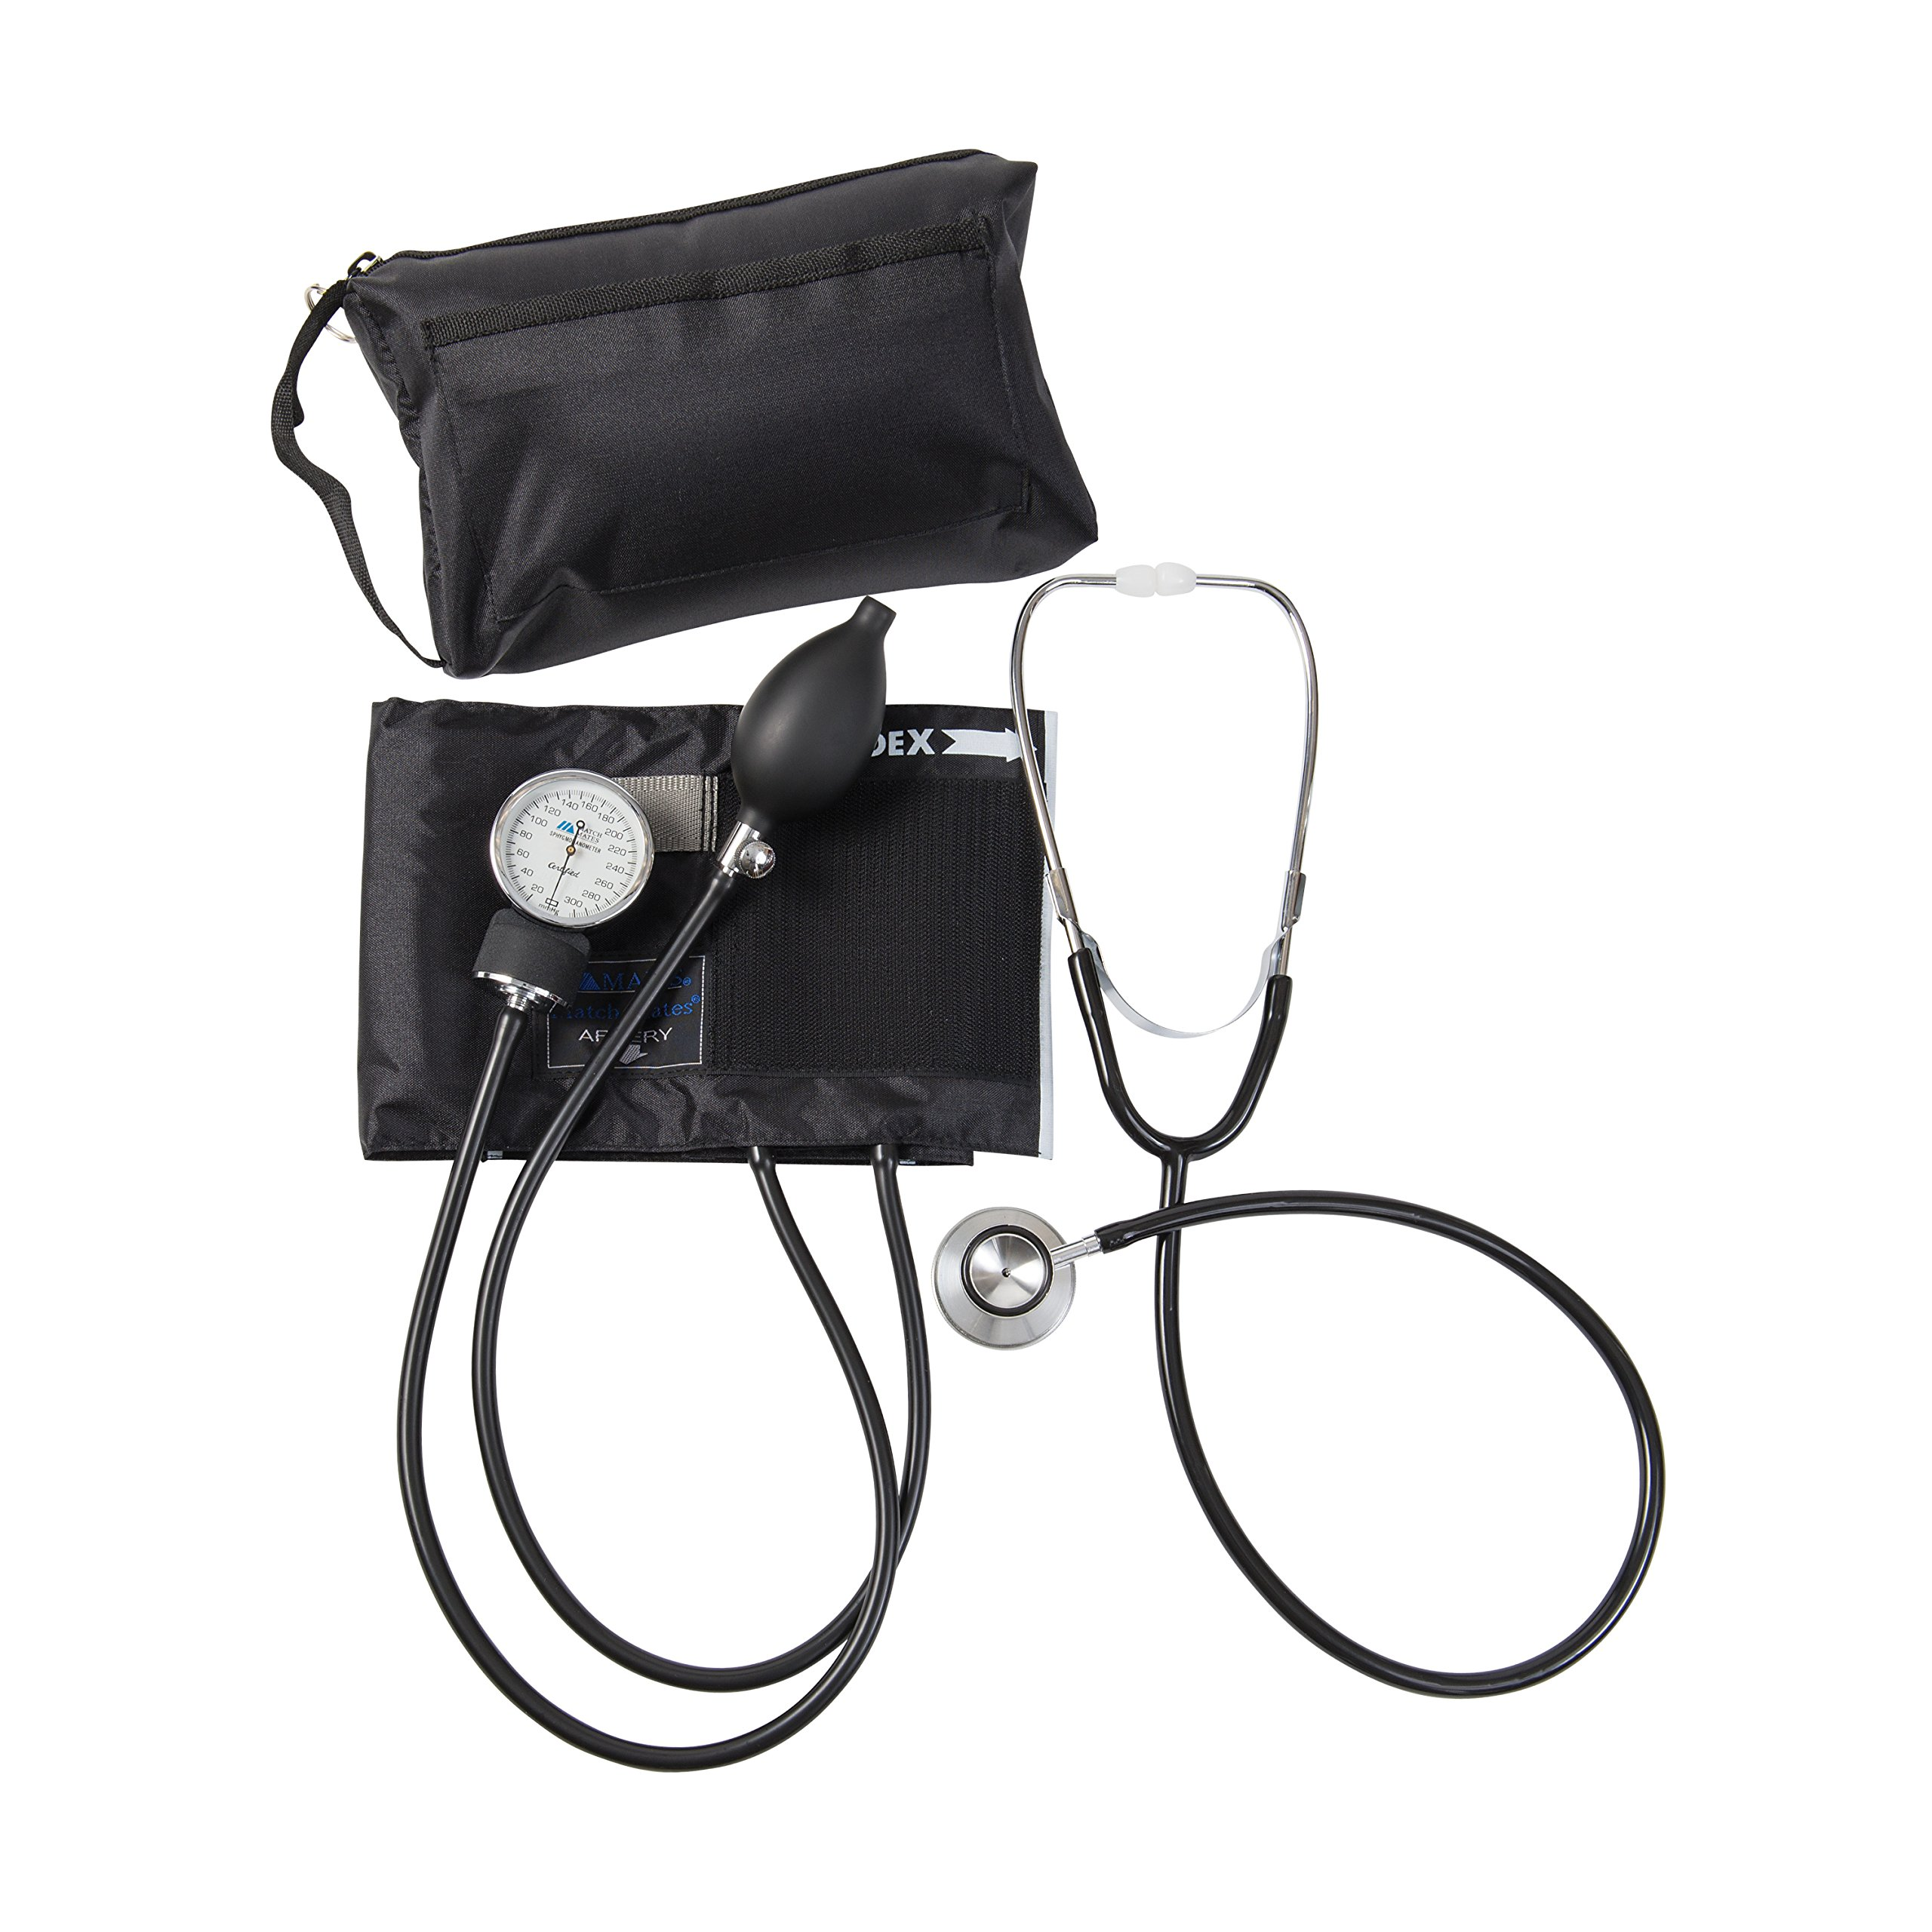 MABIS MatchMates Aneroid Sphygmomanometer and Dual Head Stethoscope Combination Home Blood Pressure Kit with Calibrated Nylon Cuff, Professional Quality, Carrying Case, Black